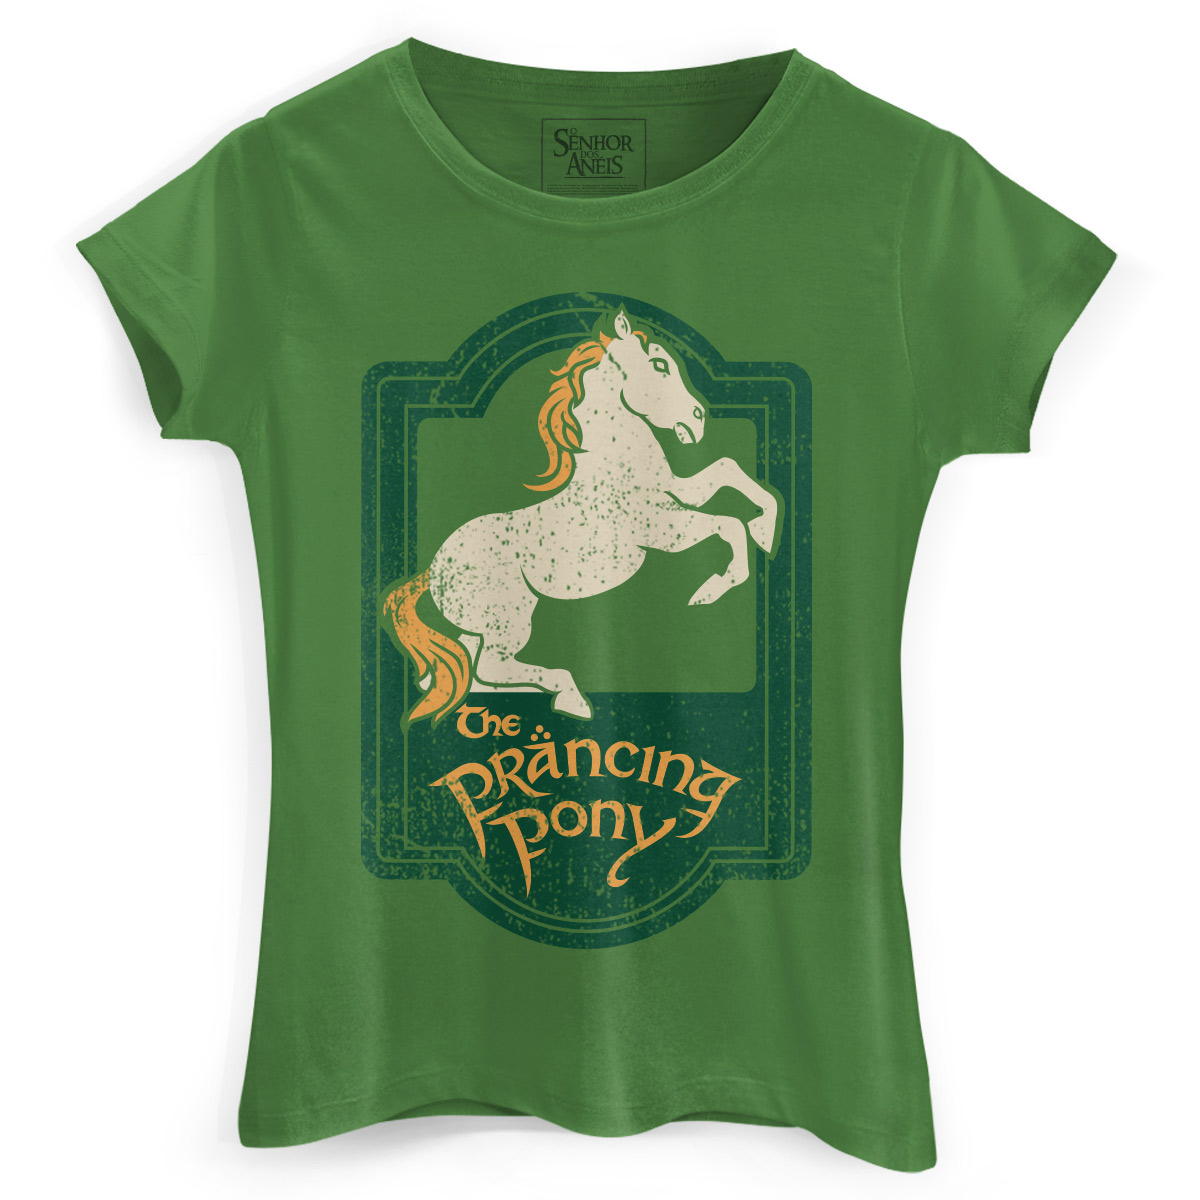 Camiseta Feminina O Senhor dos An�is The Prancing Pony